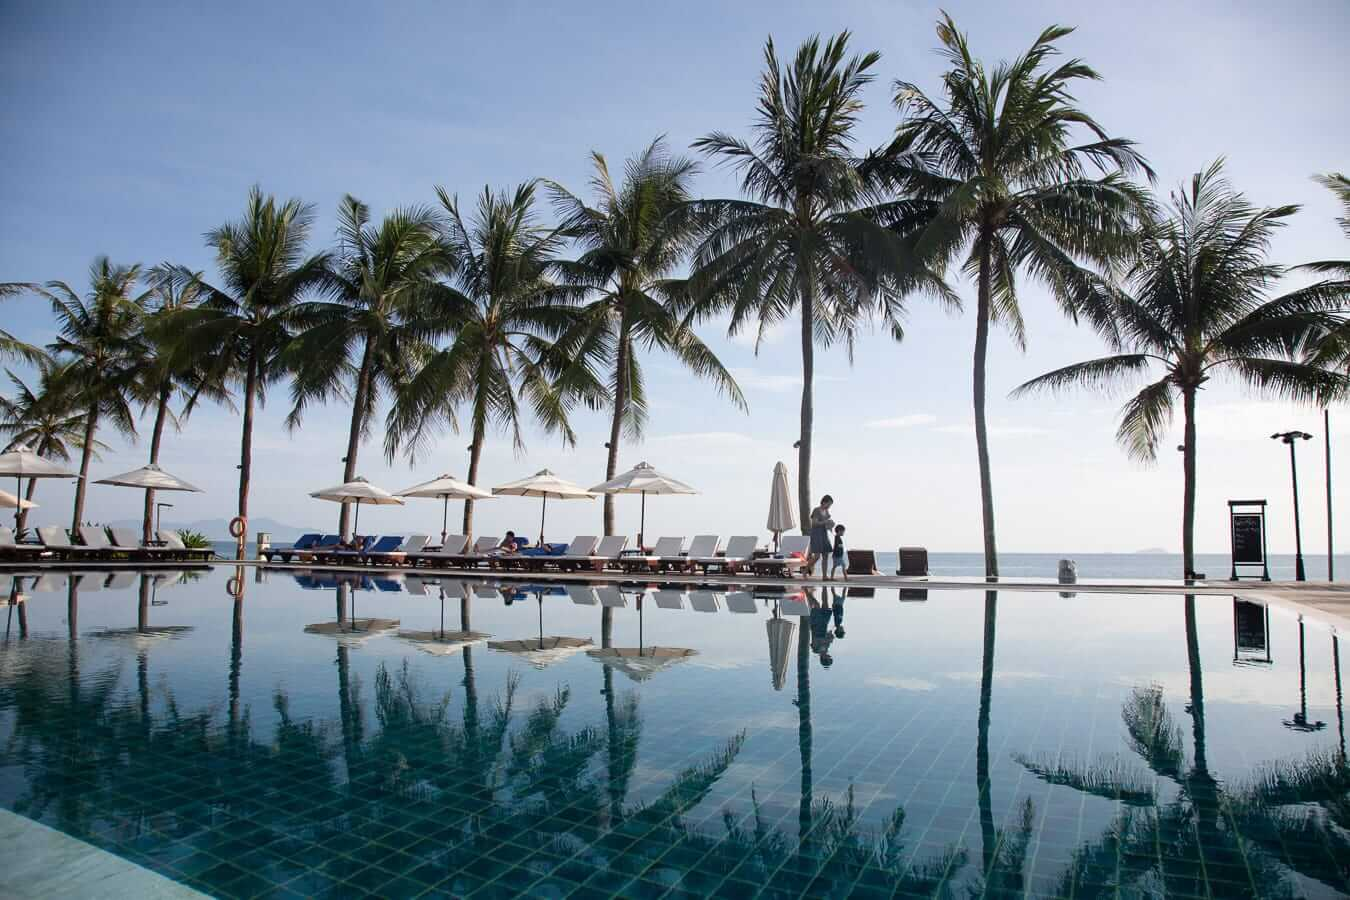 The Victoria Resort: Where to stay in Hoi An